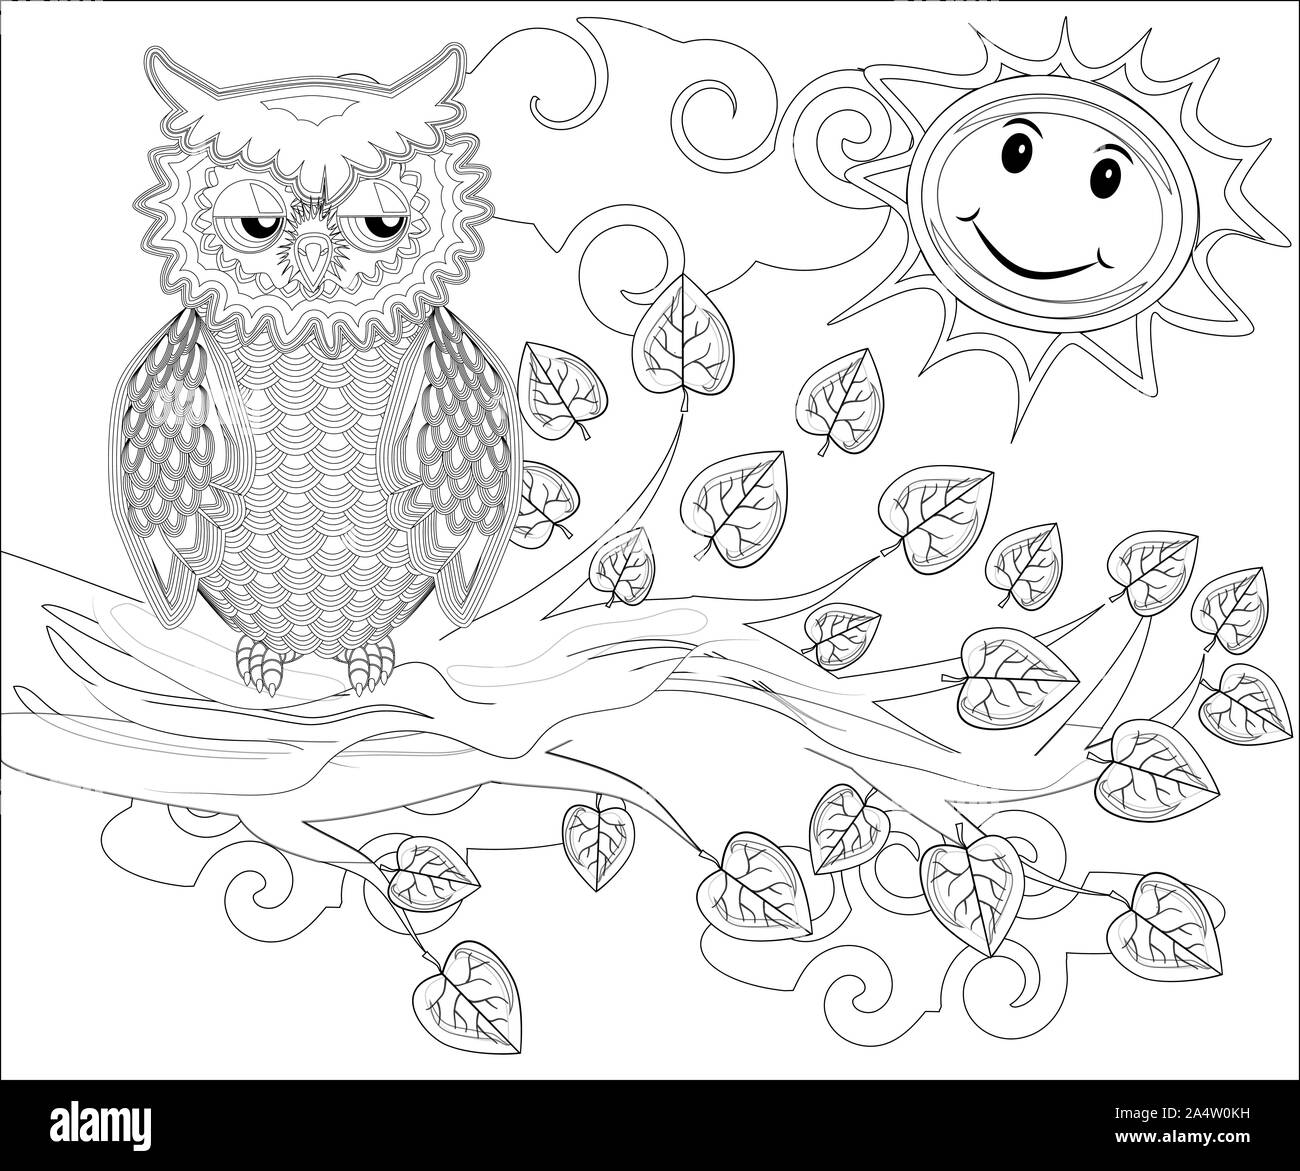 coloring pages birds cute owl sits on tree 2A4W0KH